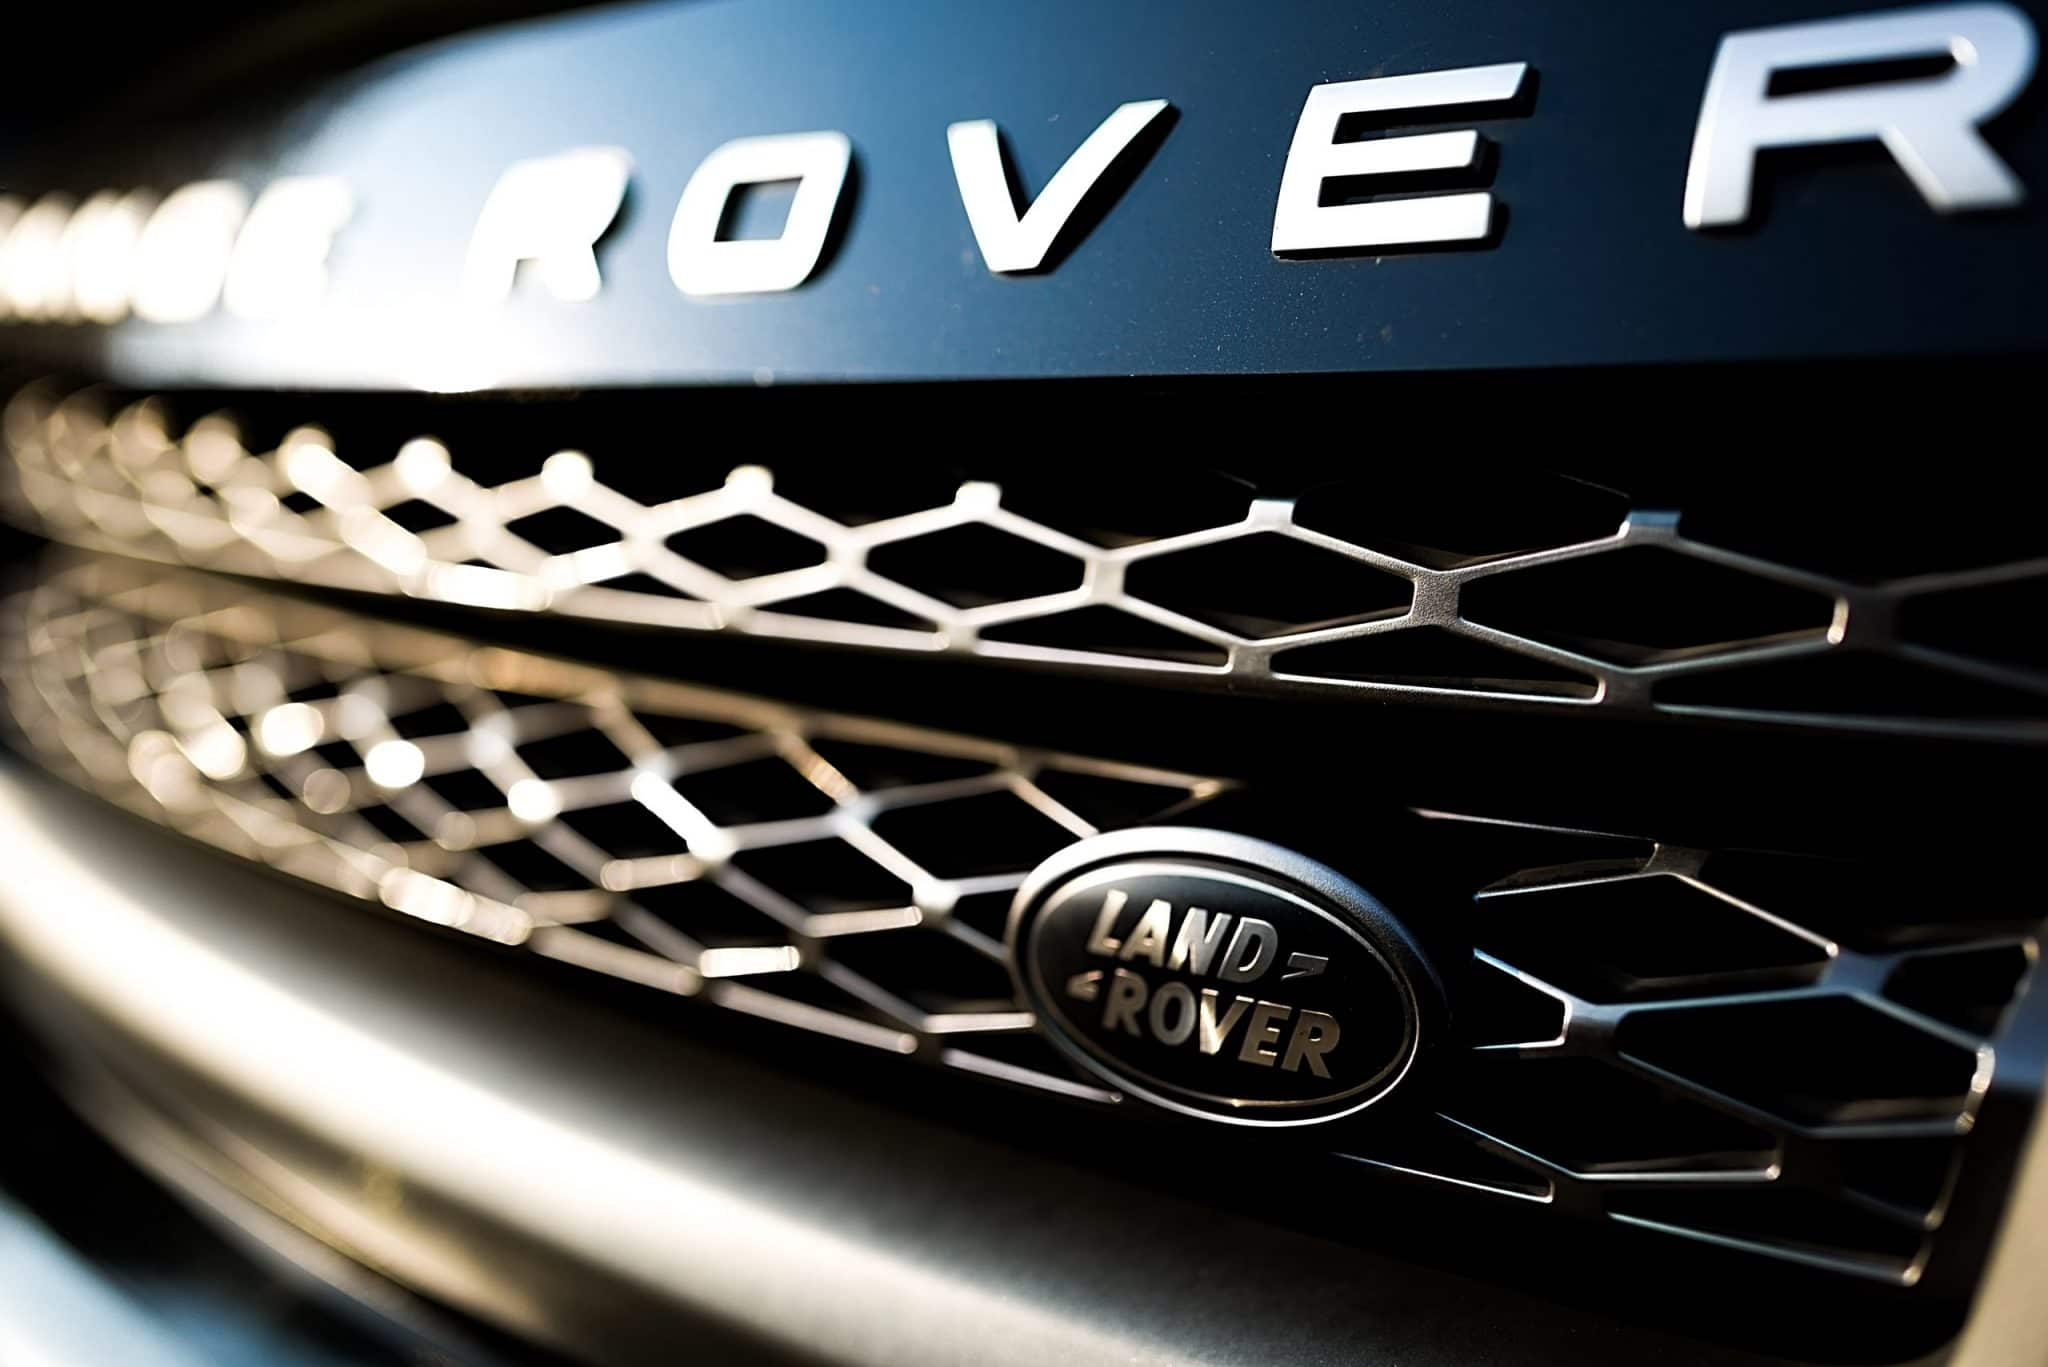 Close up of Range Rover grill   Range Rover diagnostics Stirling, Alloa and Falkirk